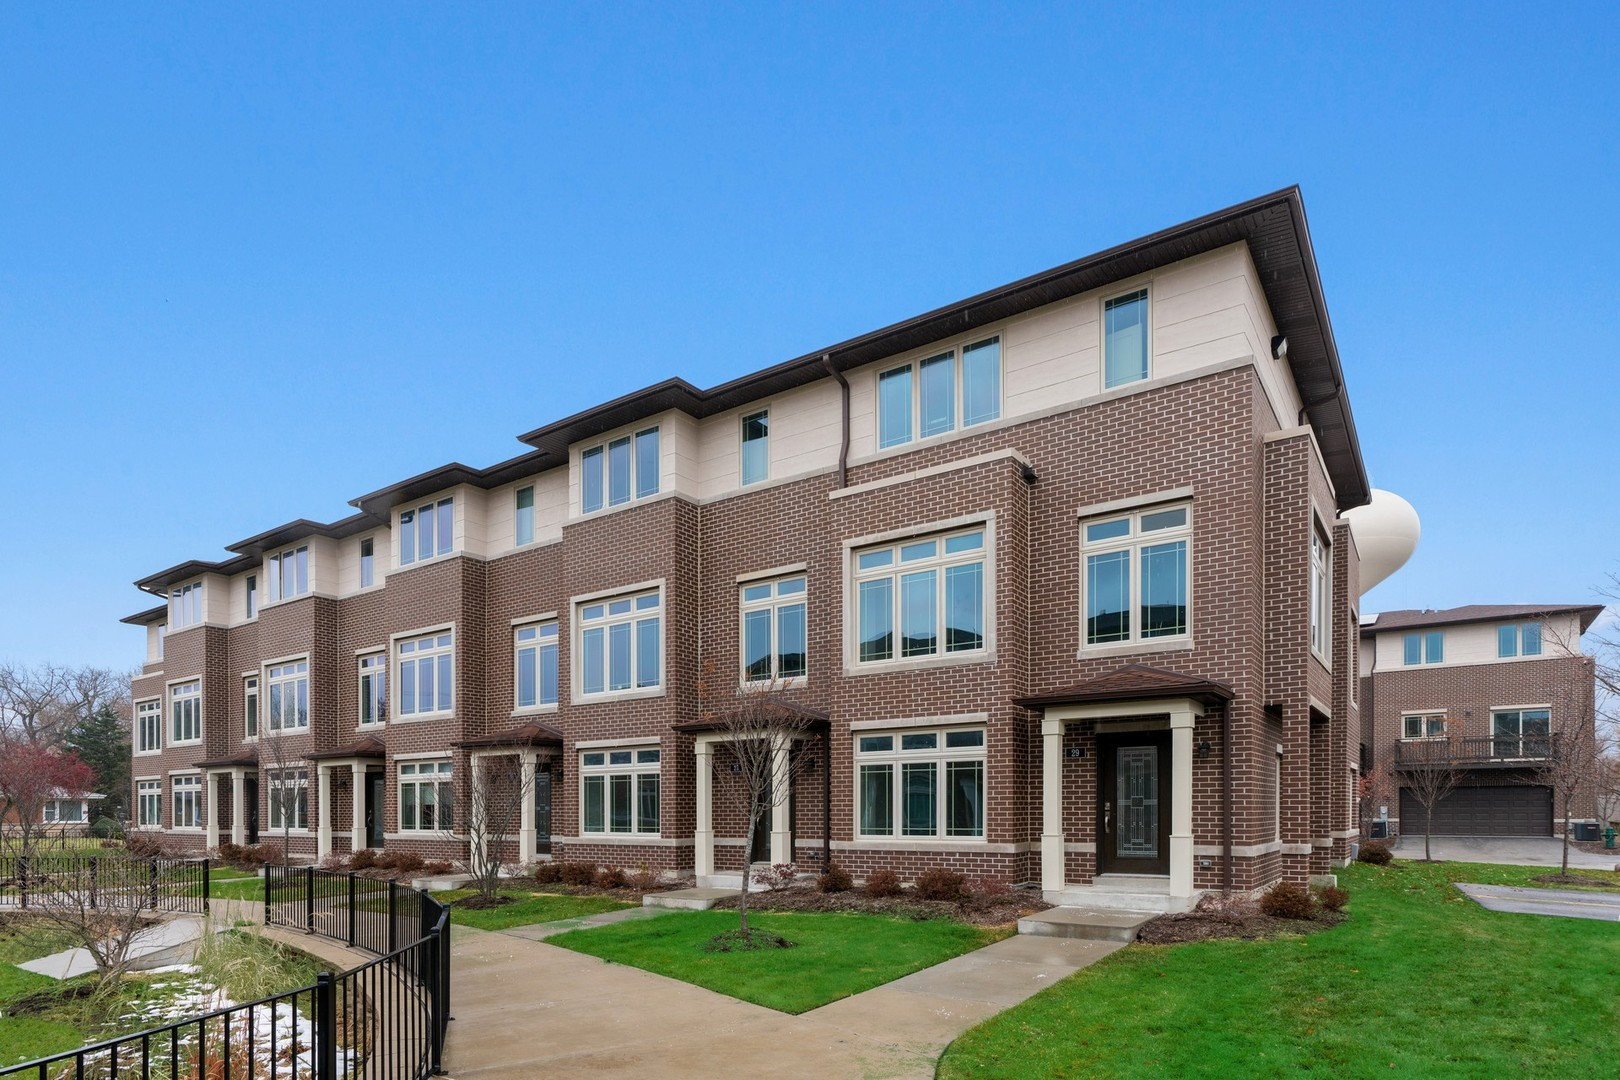 7820 Madison Street, River Forest IL 60305